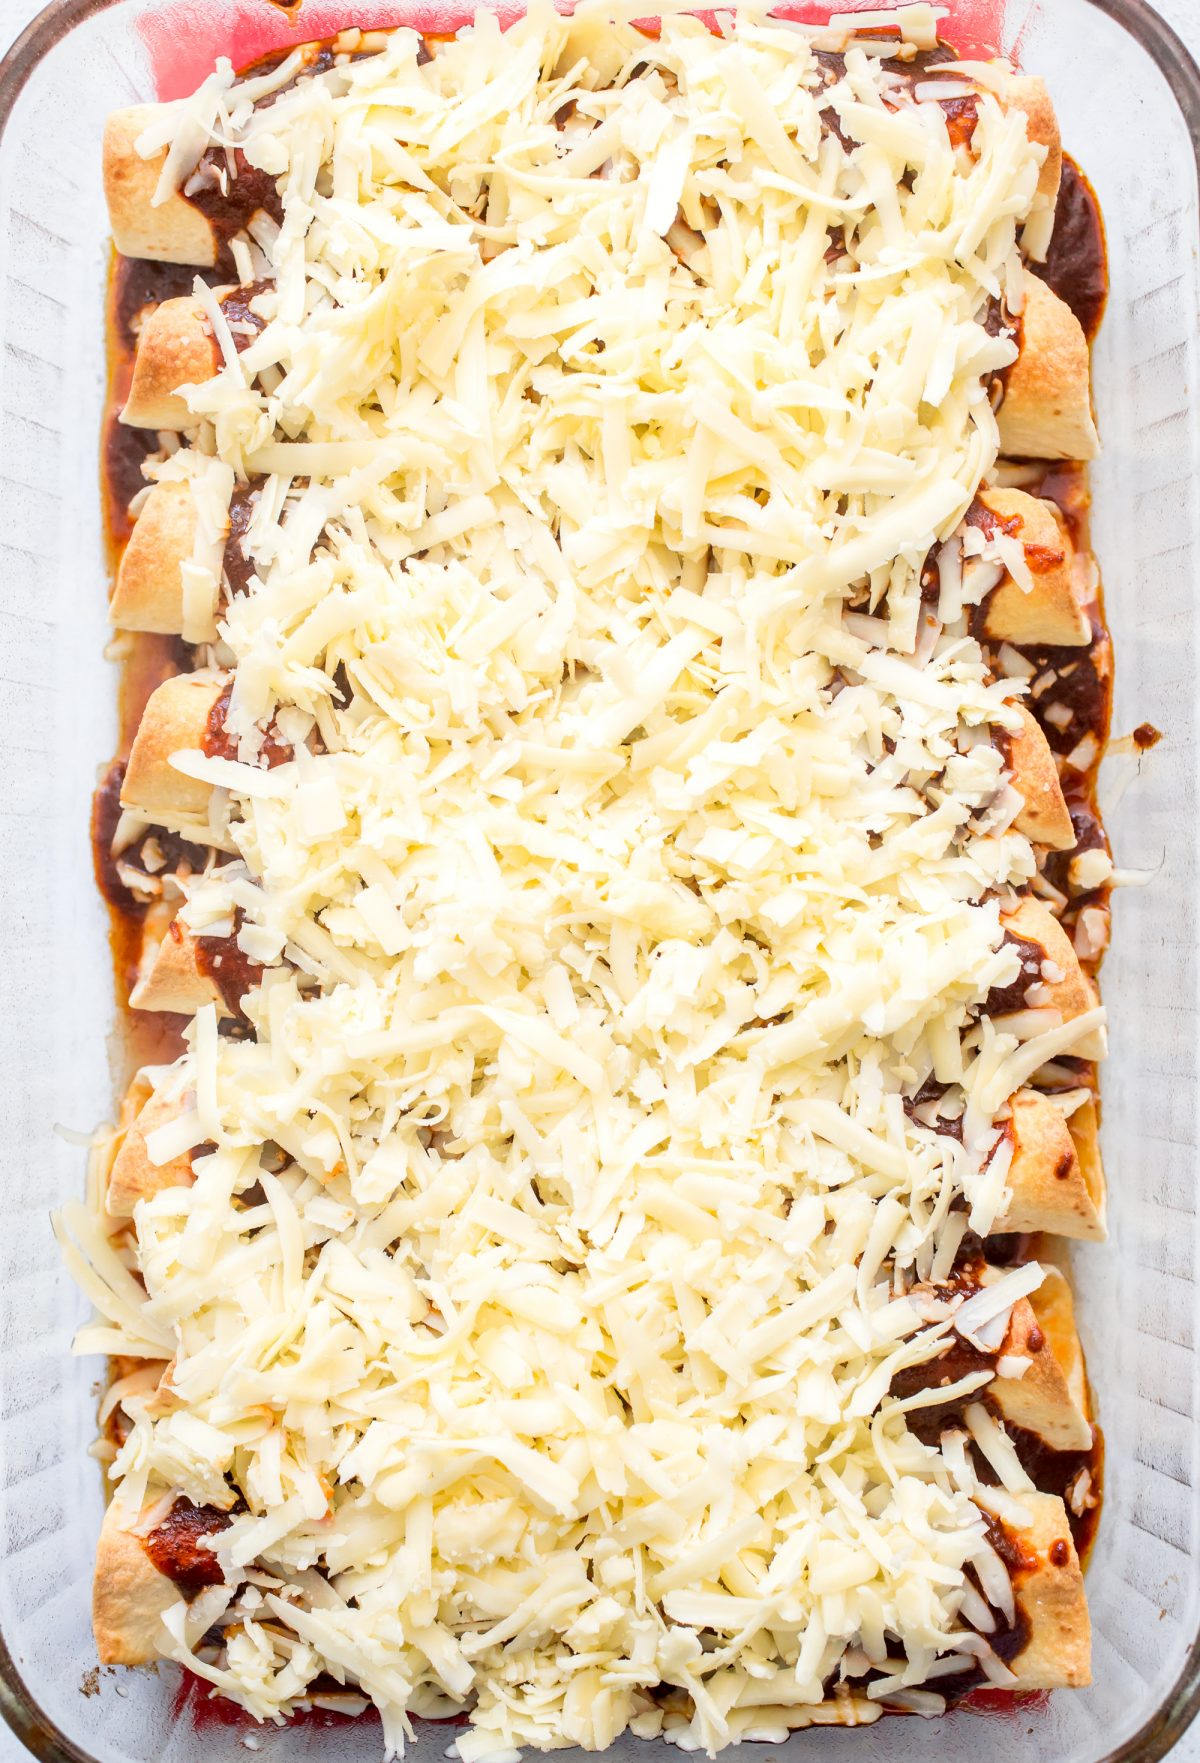 Enchiladas covered in red sauce and shredded cheese ready to be baked